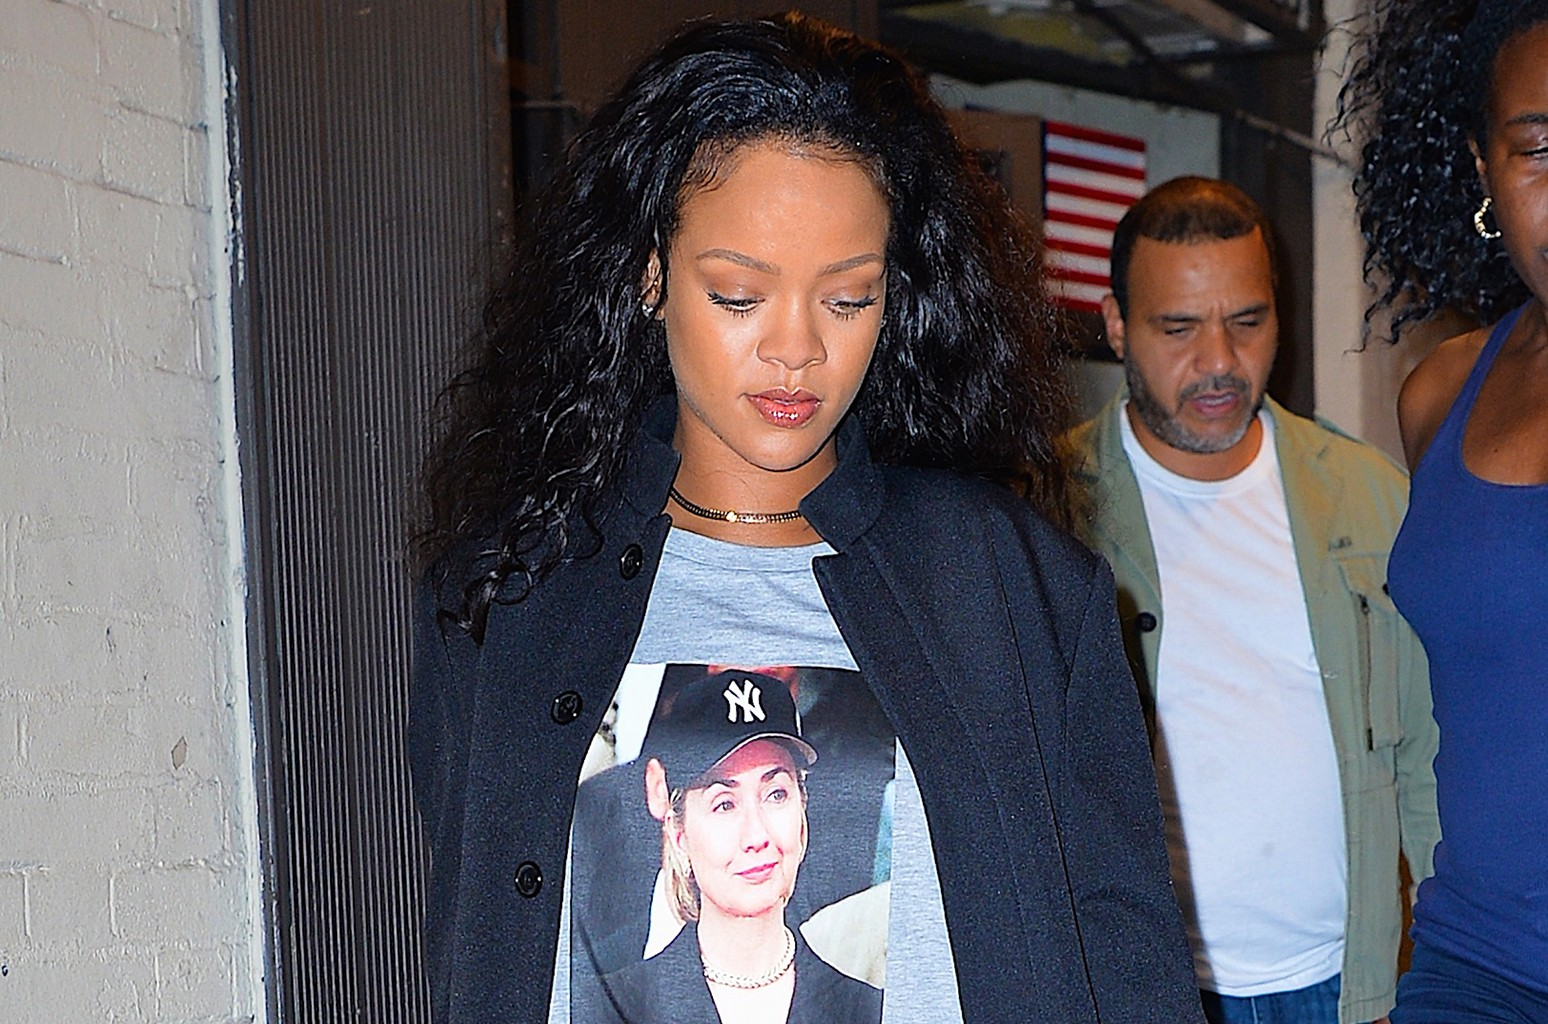 Rihanna photographed on Oct. 19, 2016 in New York City.